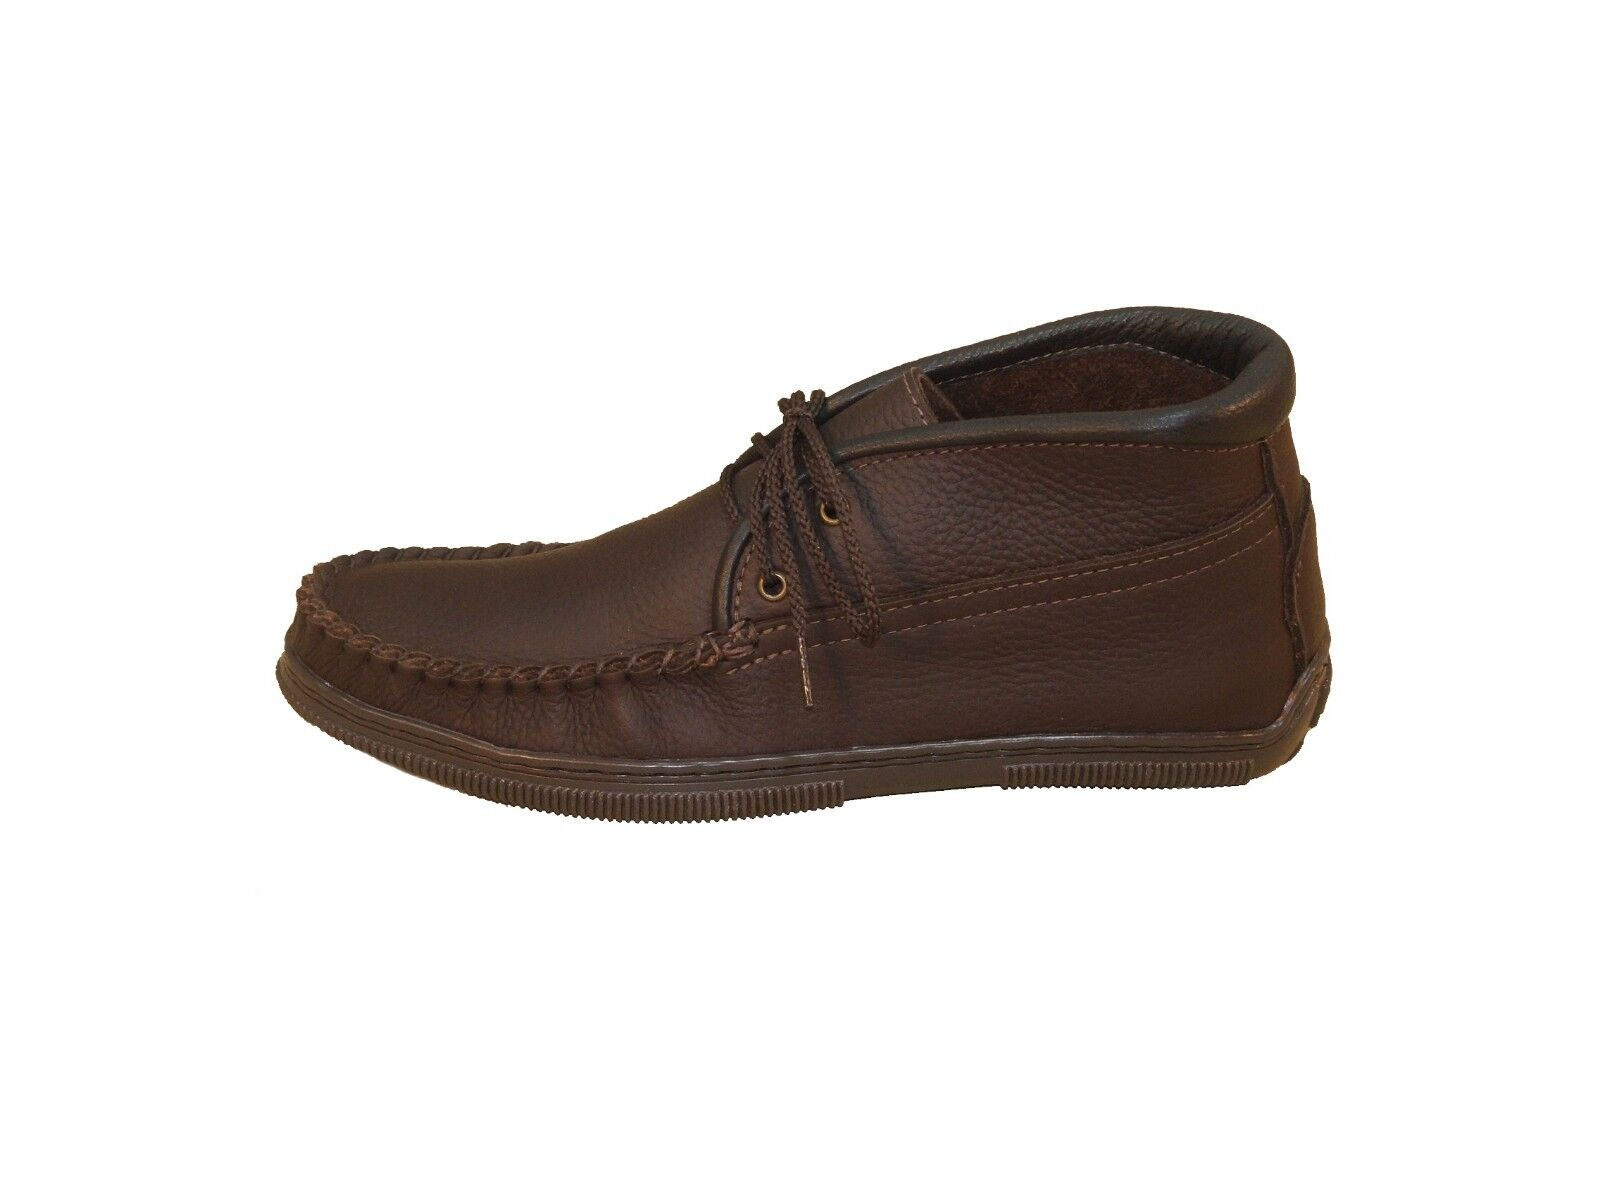 Men's Cowhide Lace-up Chukka Boots Sizes 6-13 Handmade in USA